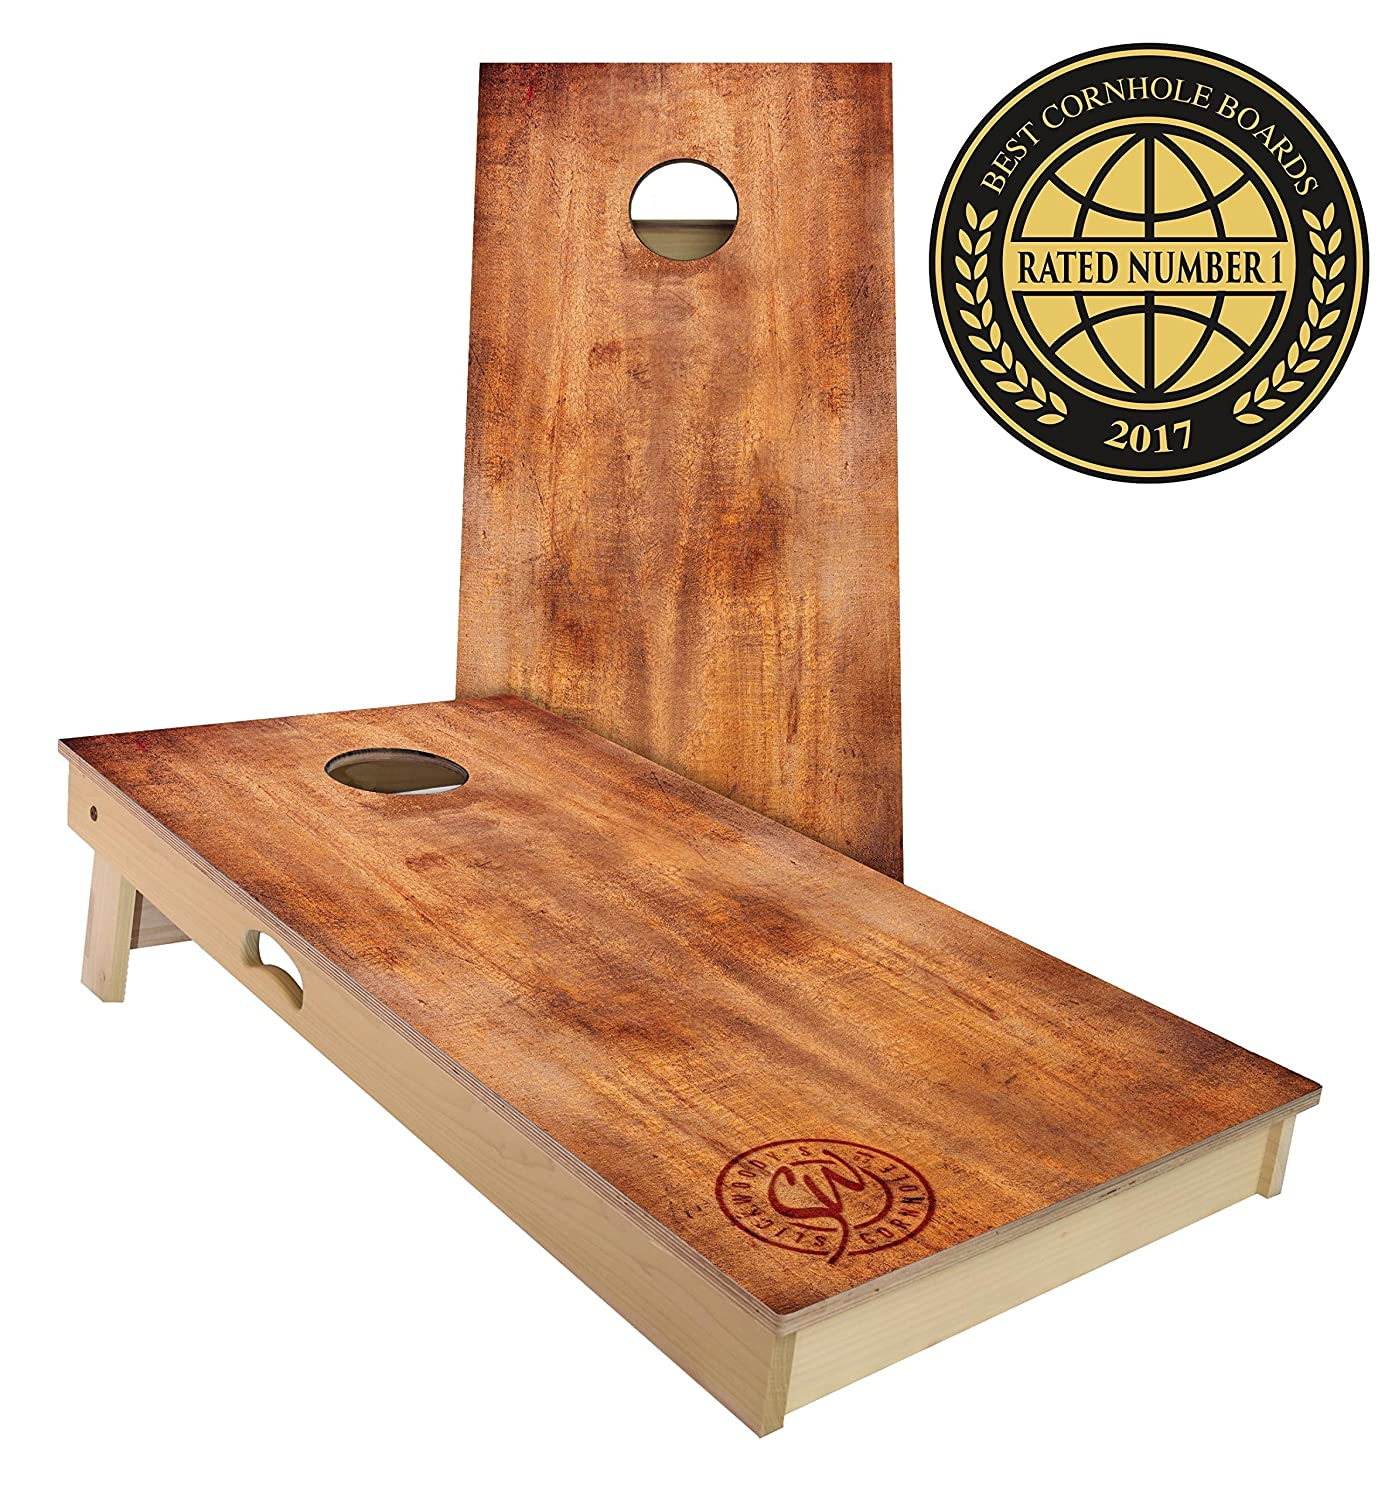 Slick Woody's Burnt Wood Cornhole Set